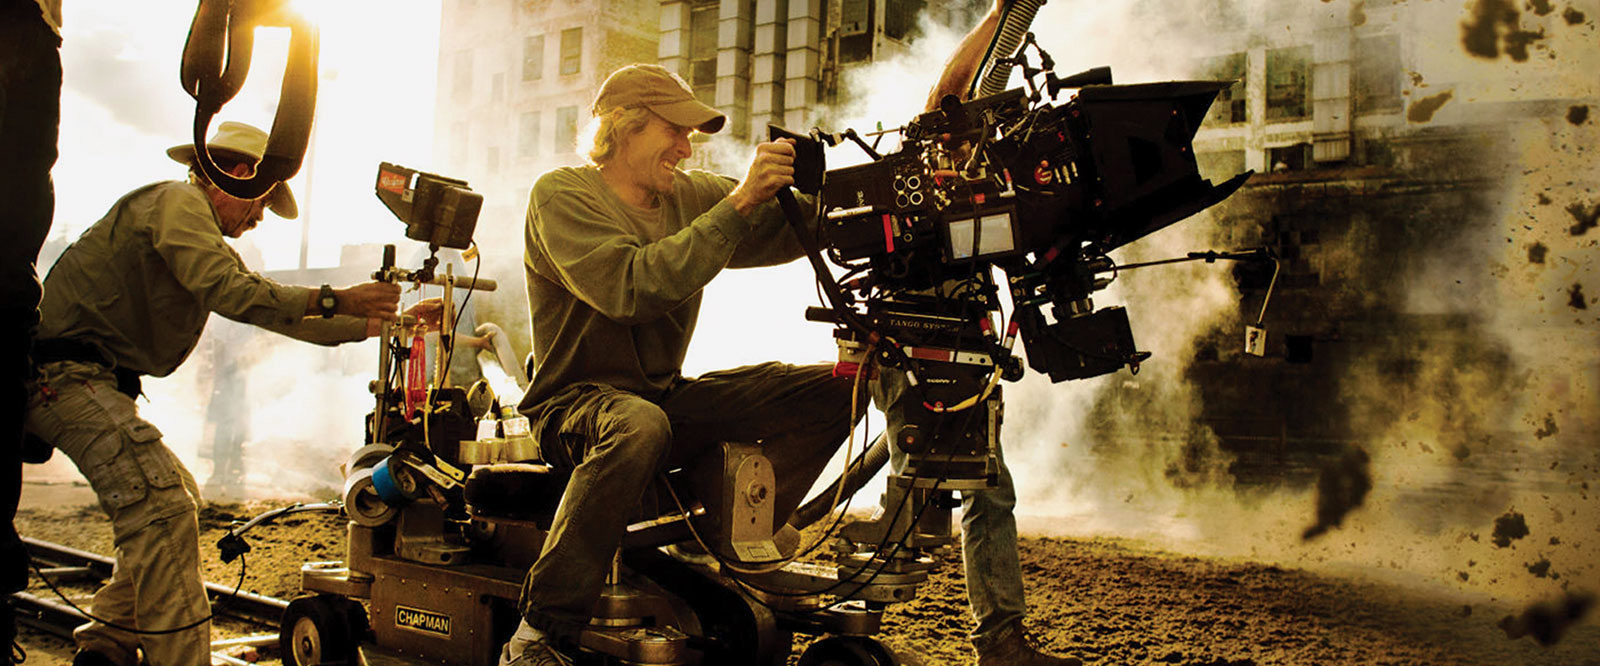 03-Michael-Bay-Best-Ad-Creatives-Mobile-Games-Successful-UA-Campaigns